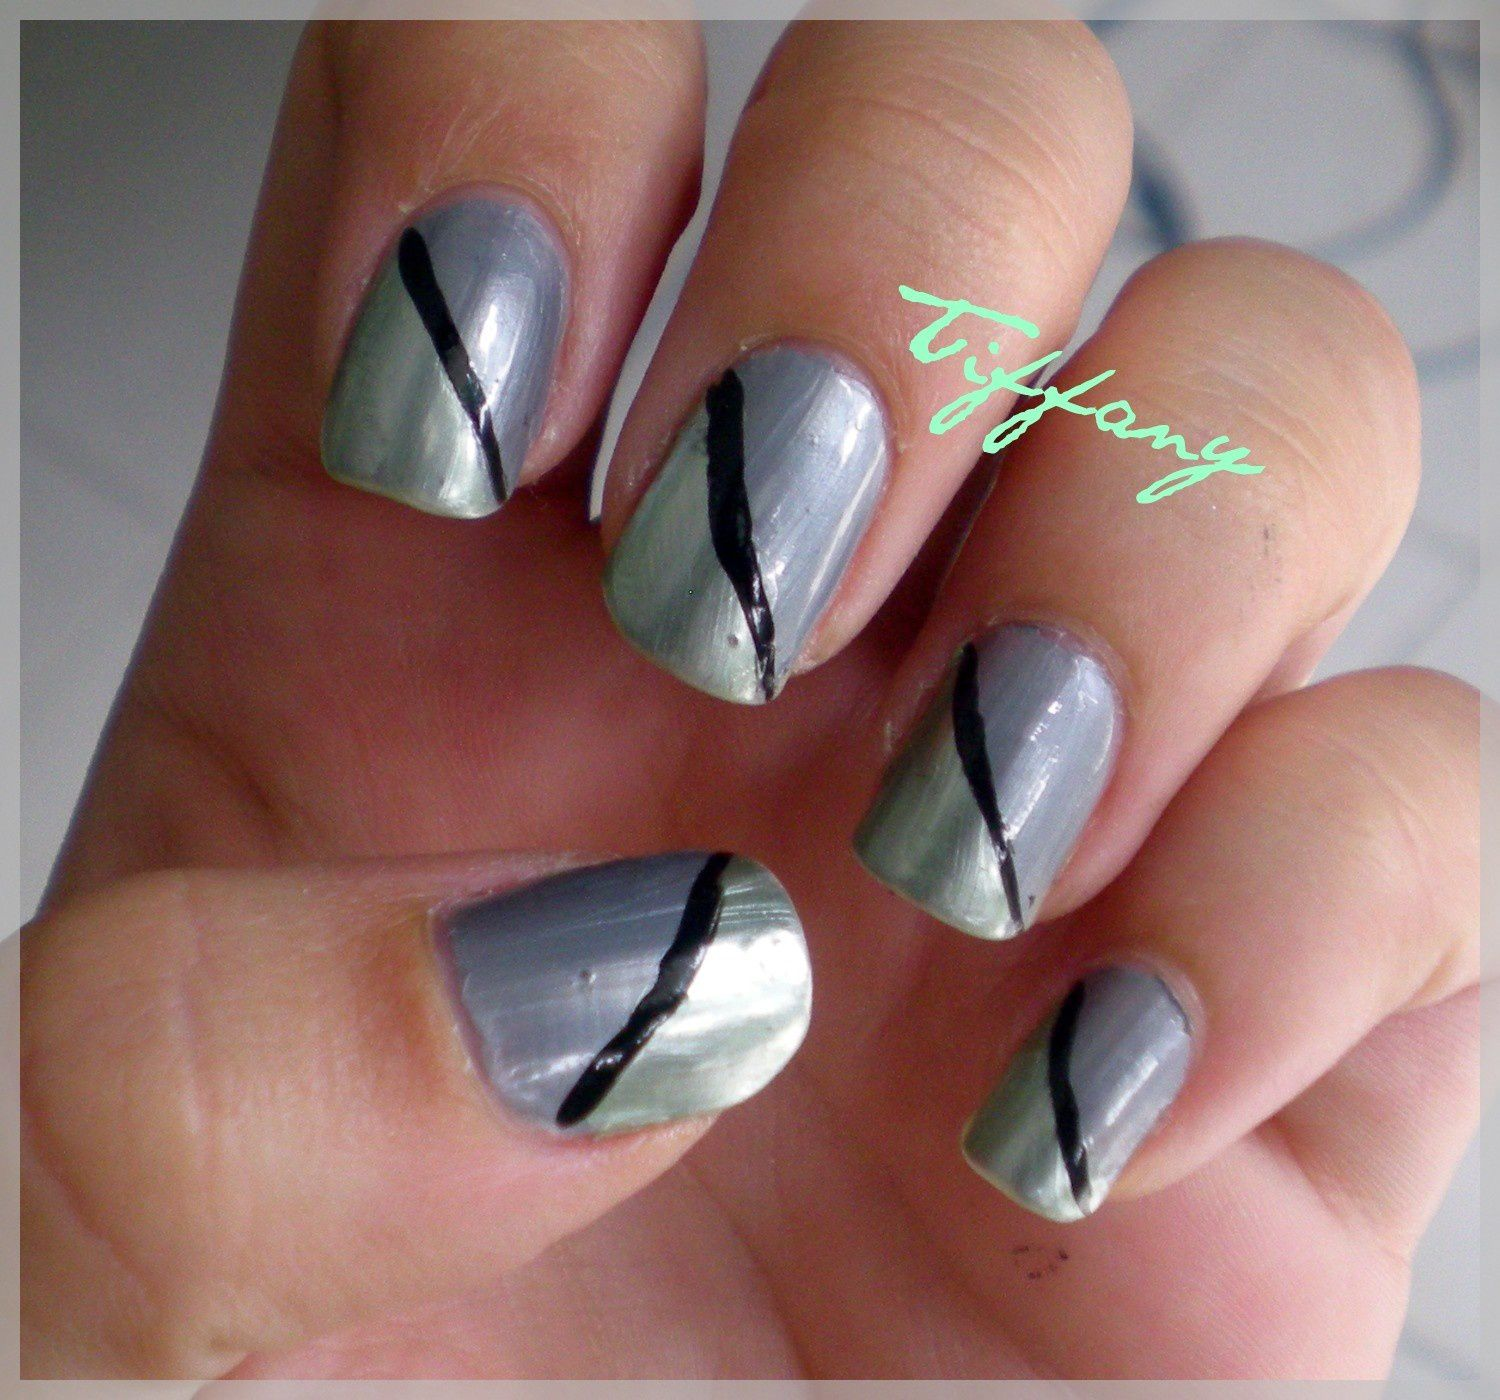 Ongles 30.05.11 (1)